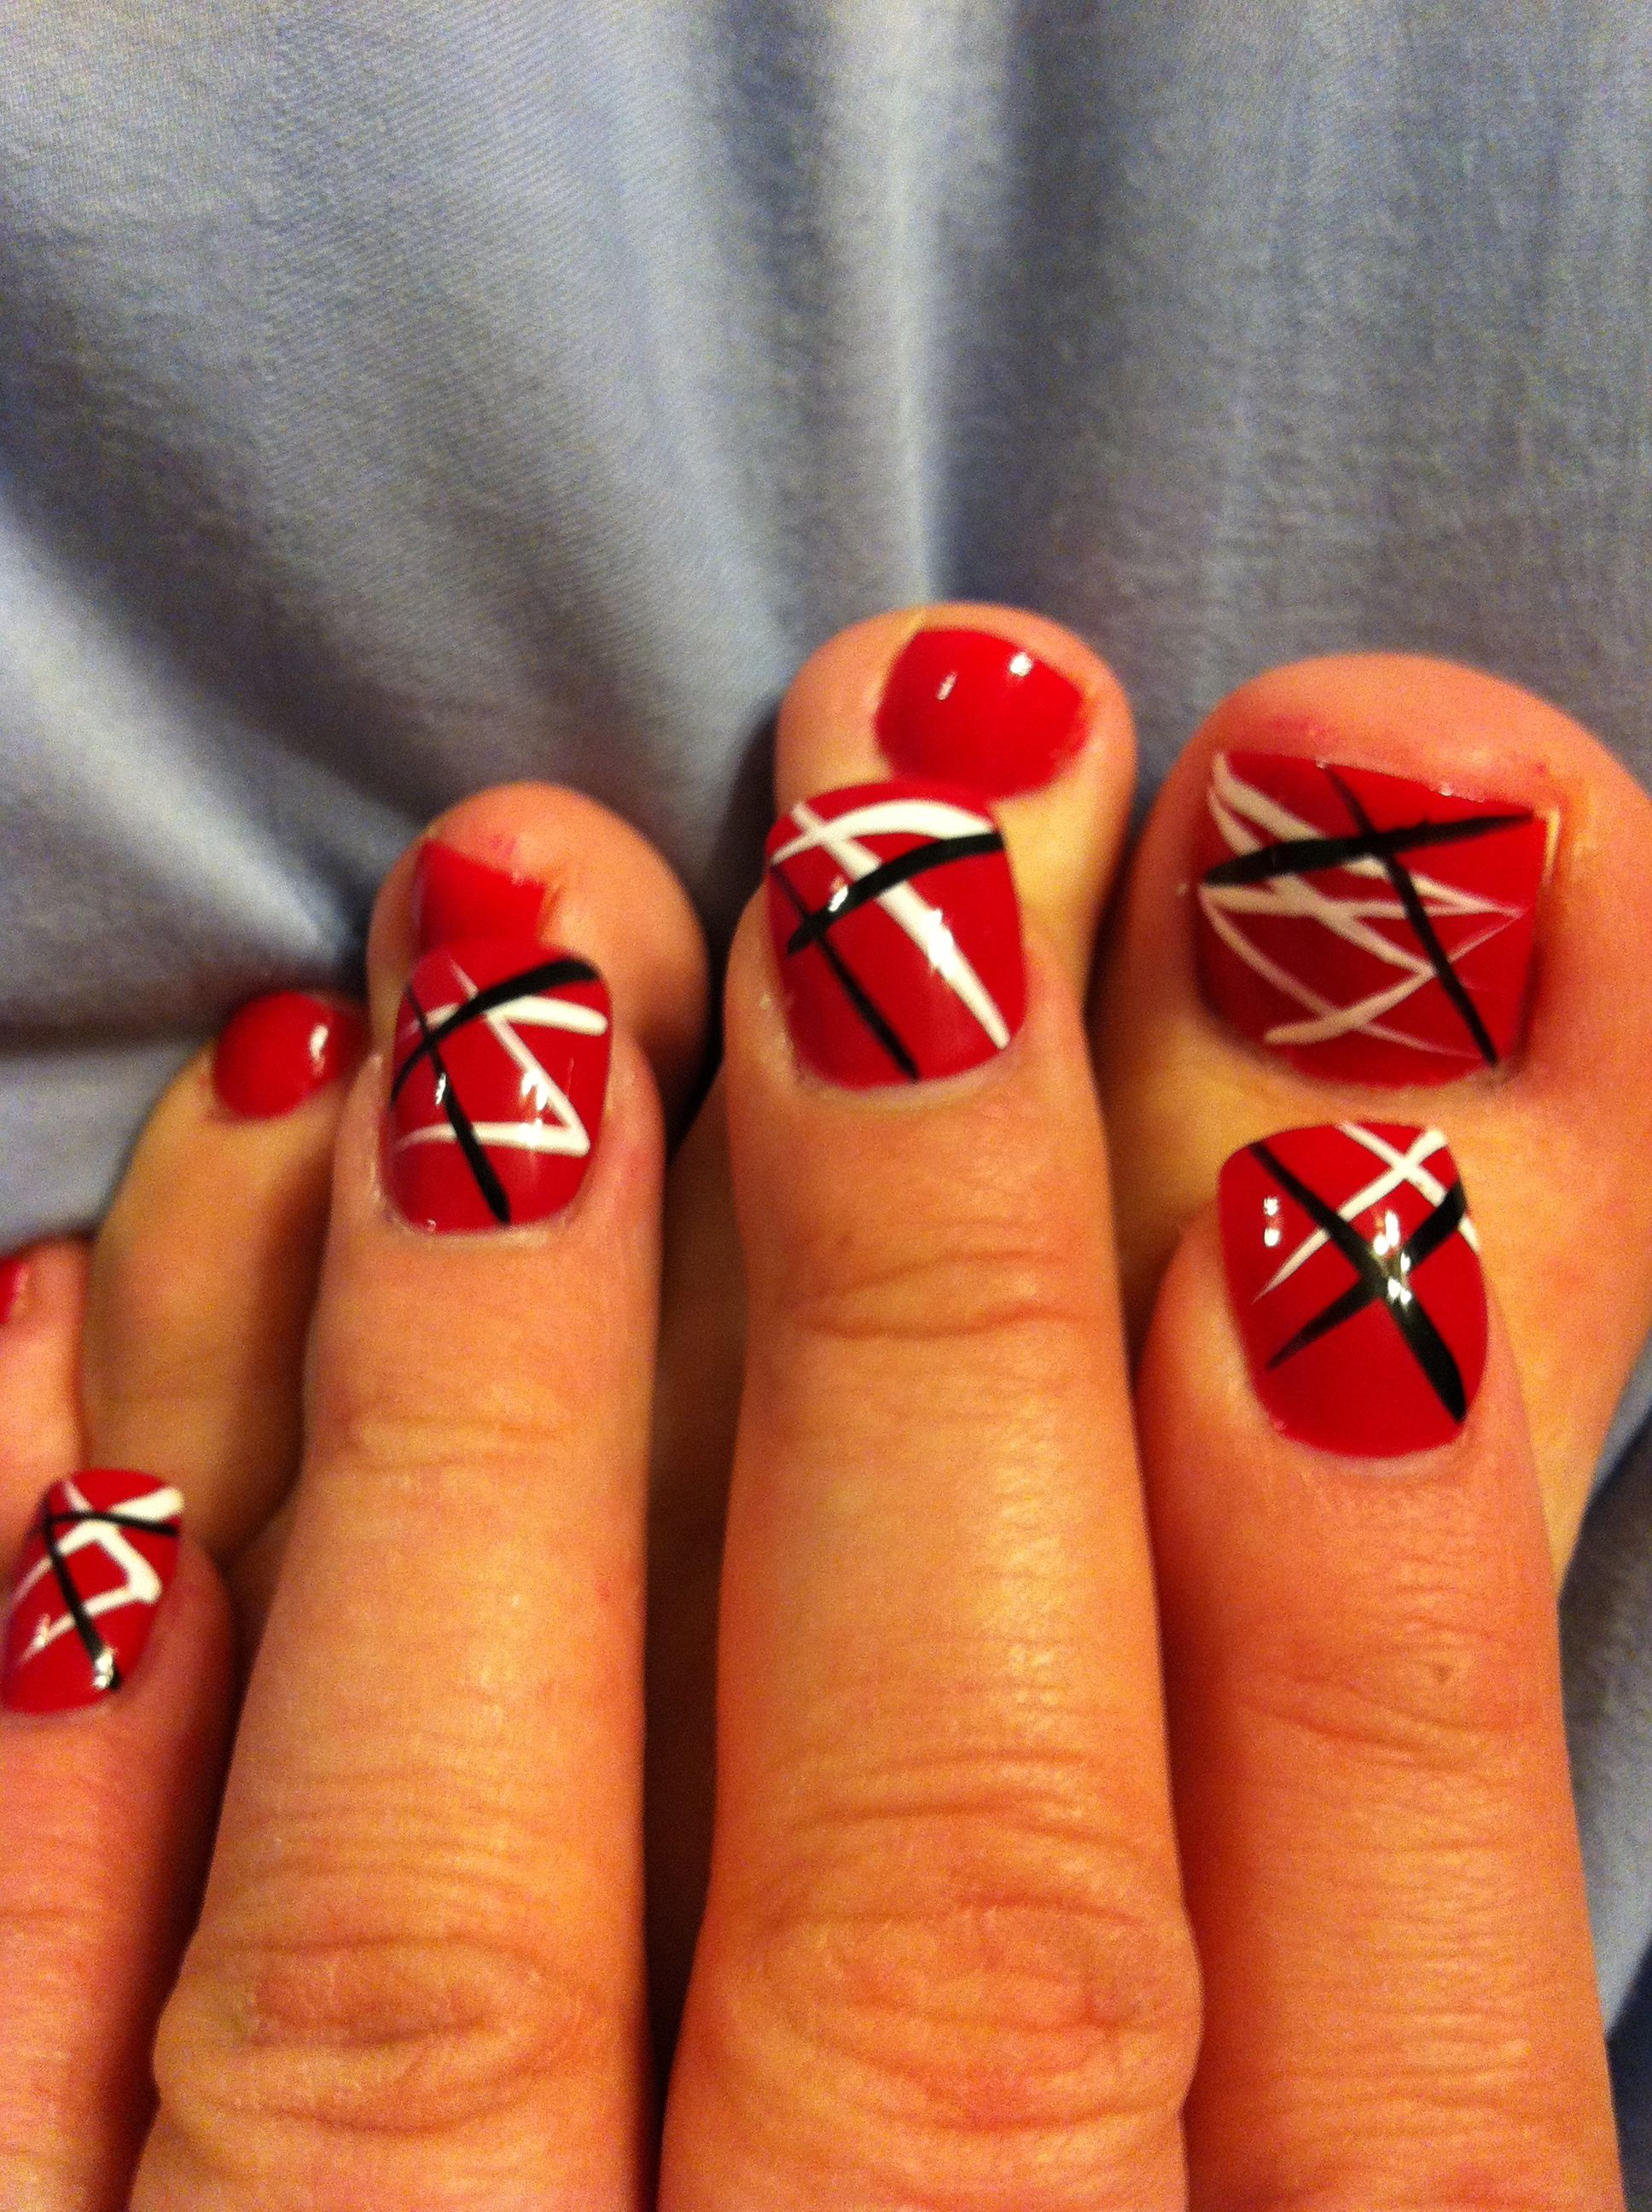 Eddie Van Halen Inspired Mani Pedi Must Have For The Concert Pedicure Nail Art Black Toe Nails Pretty Nail Colors